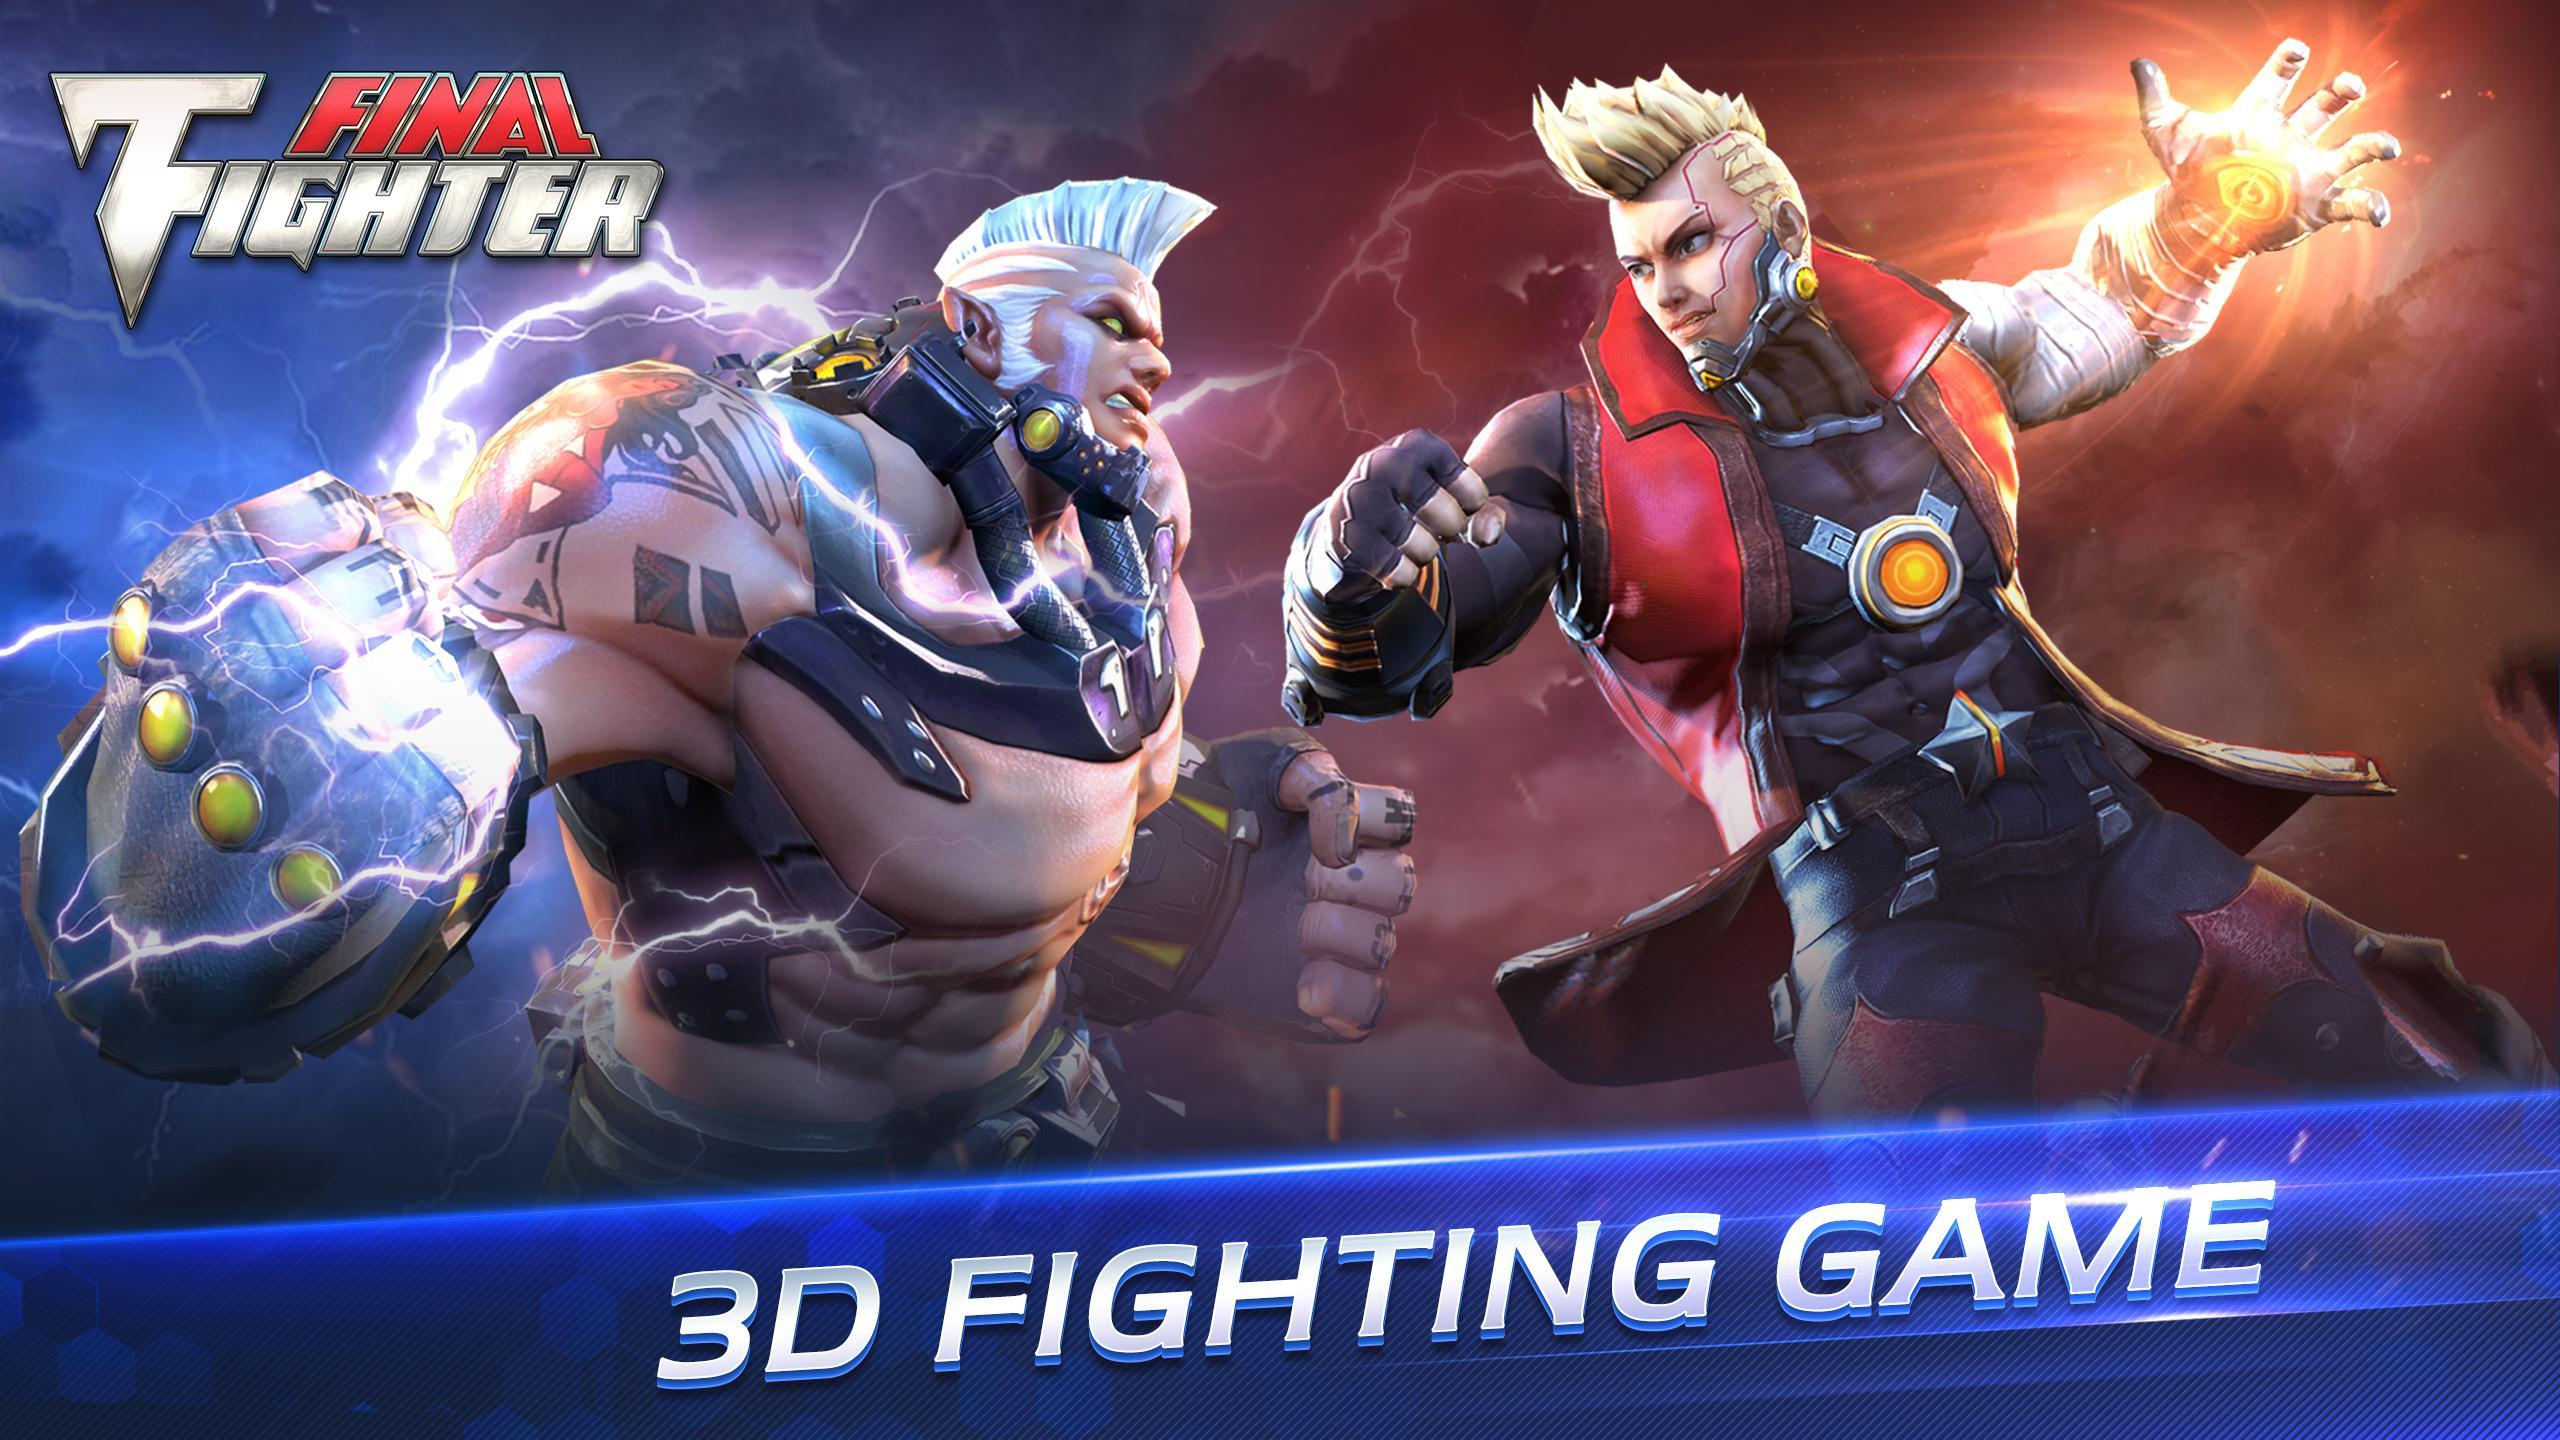 Final Fighter for Android - APK Download